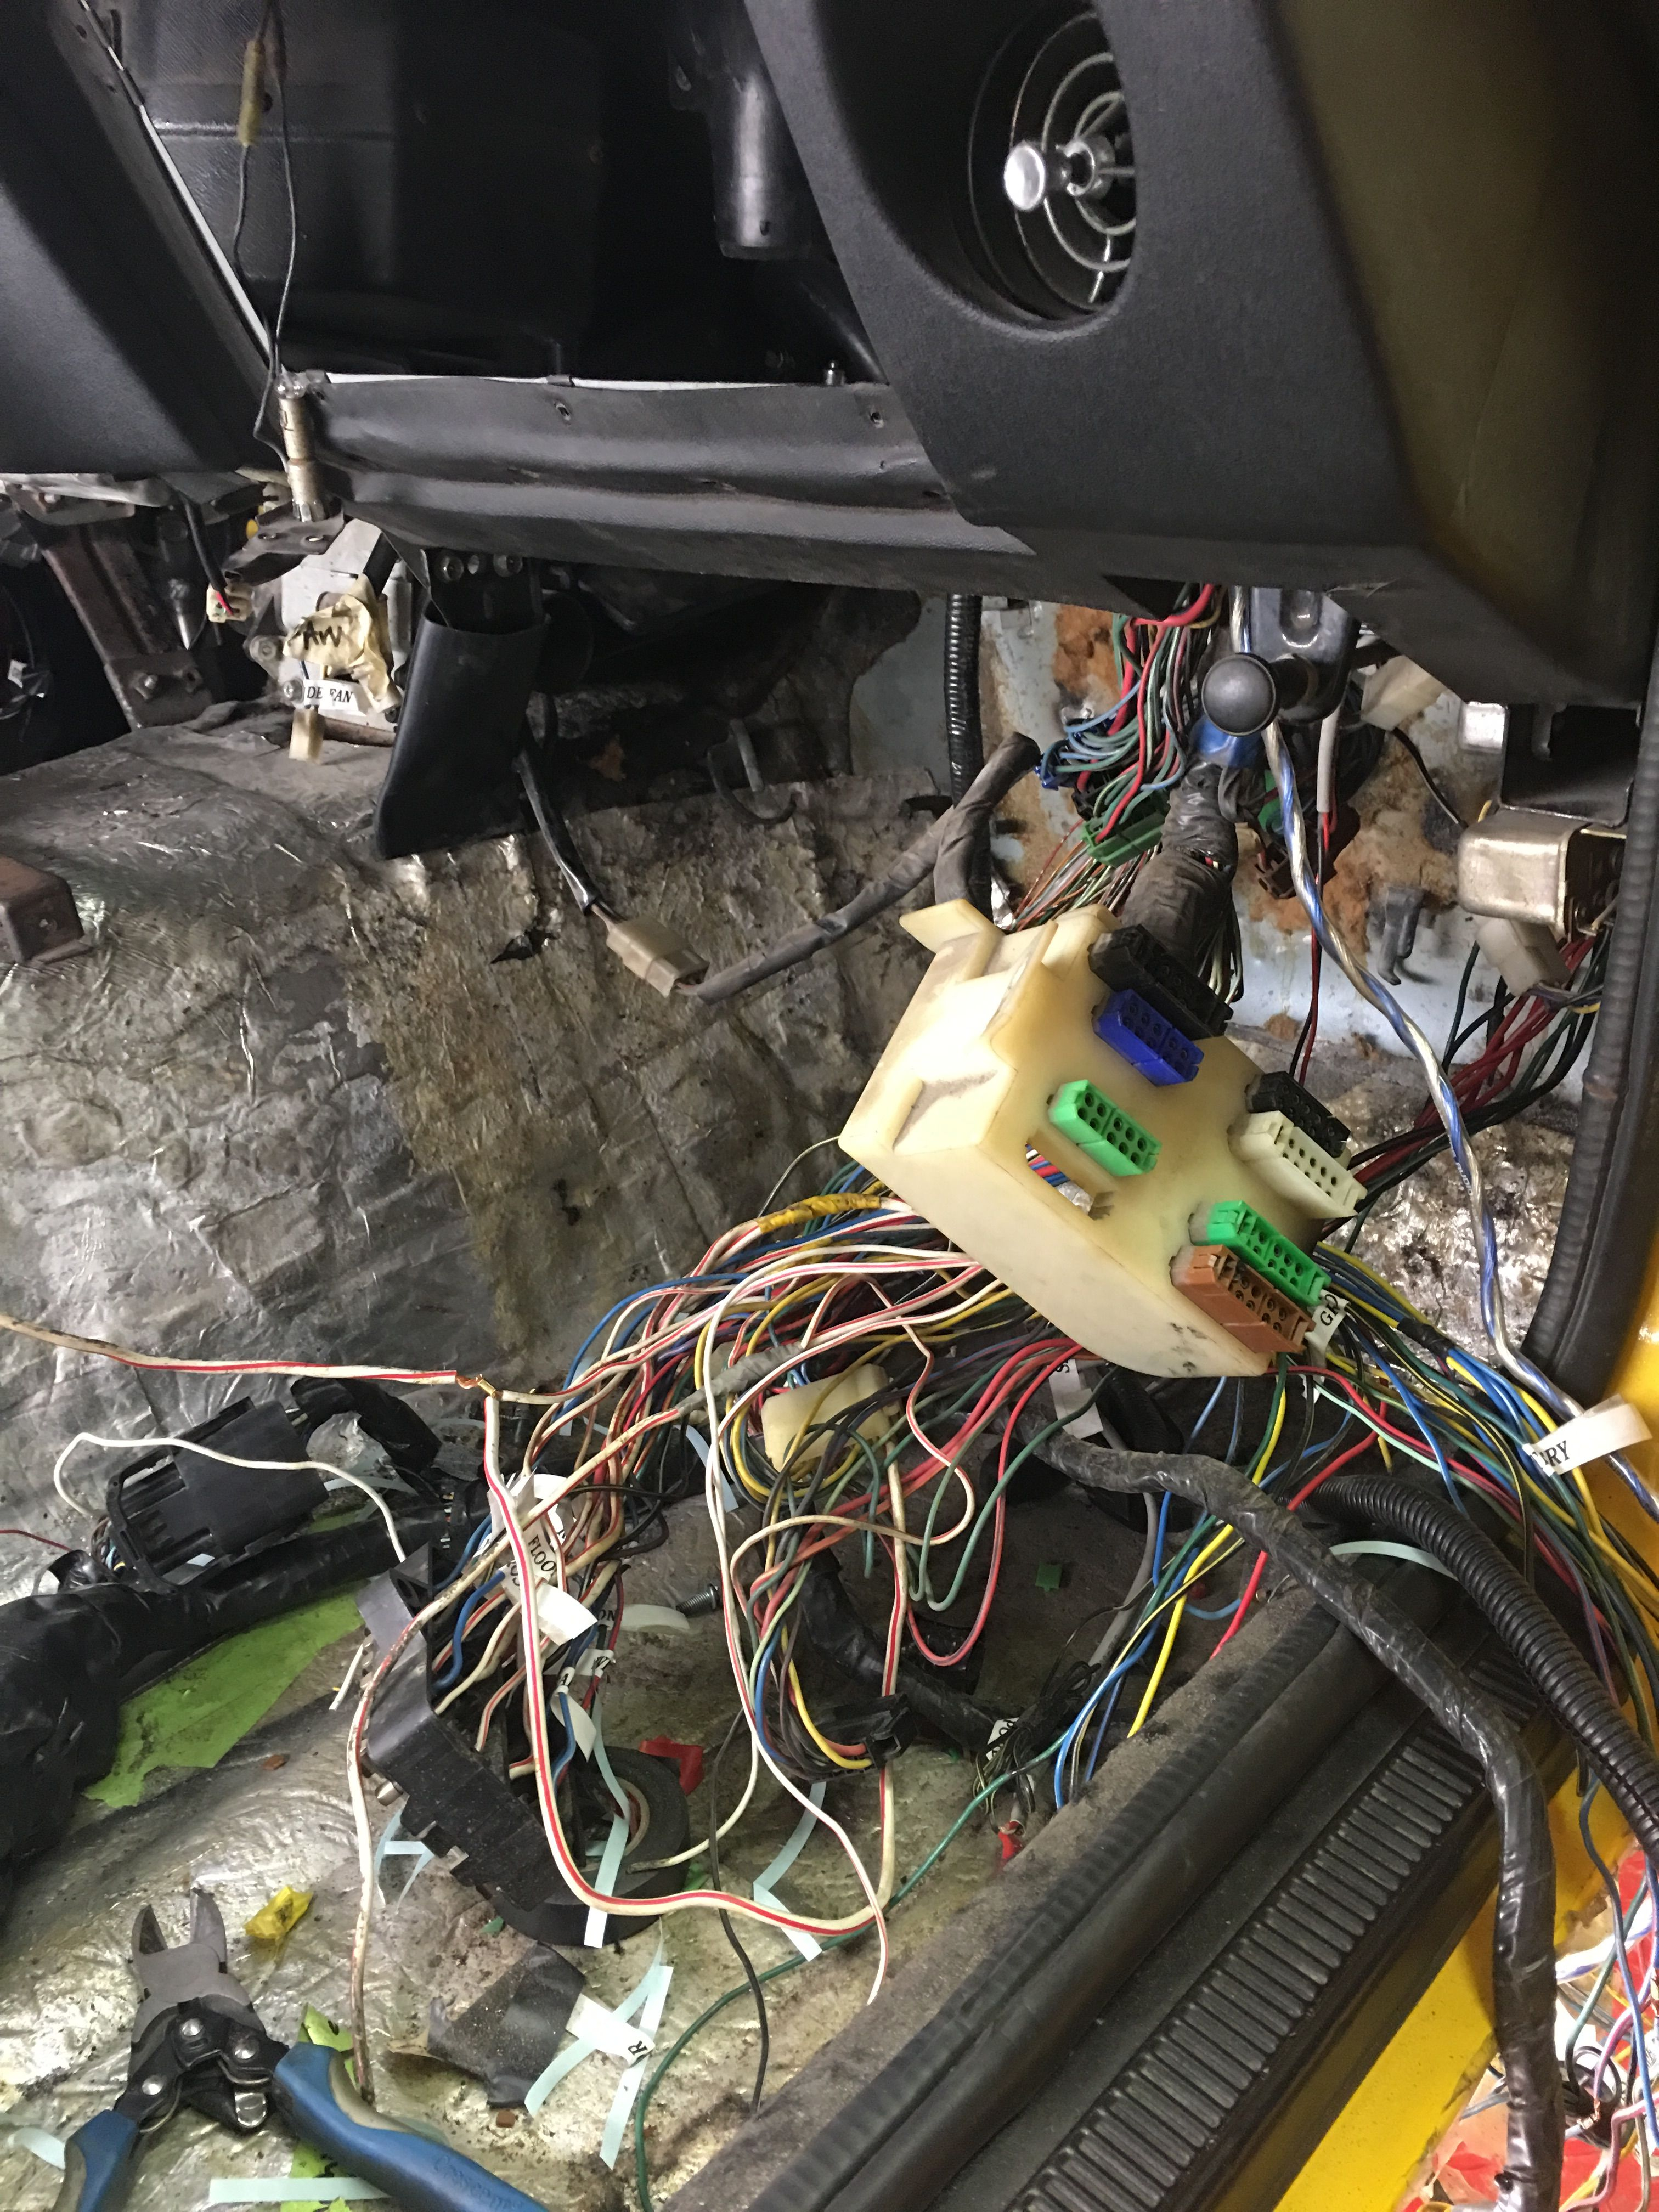 Replacing the fuse box and cleaning up the firewall